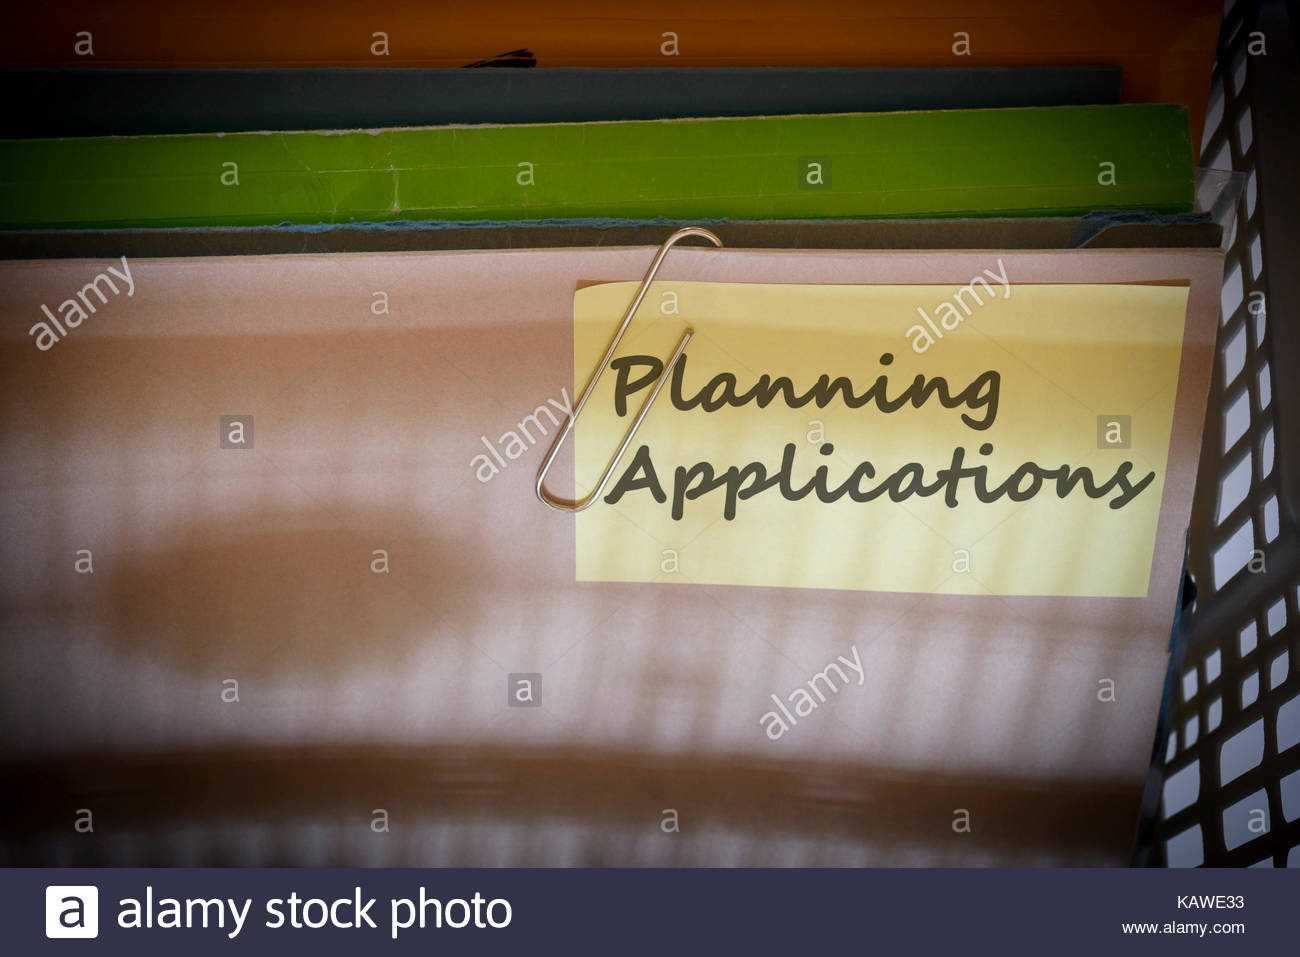 Planning Applications written on document folder, Dorset, England. Stock Photo